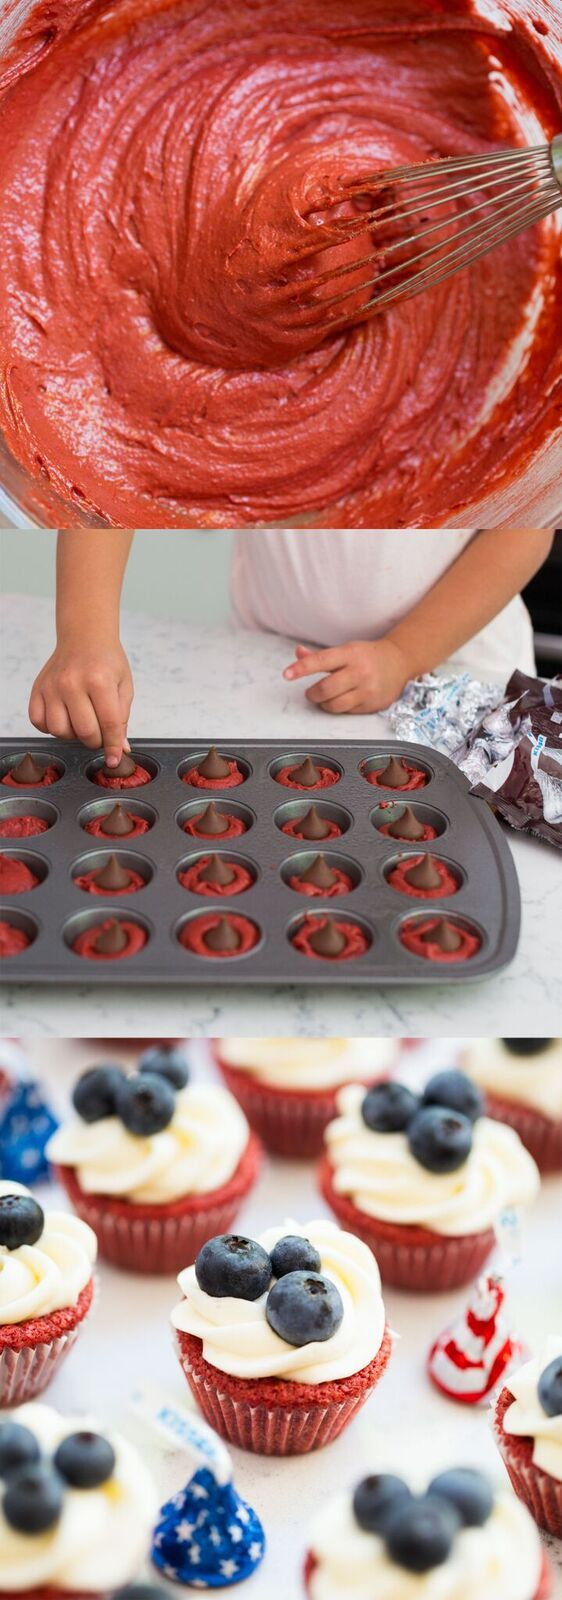 Red Velvet Brownie Cups with Cream Cheese Frosting and a Hershey Kiss inside. These have the perfect amount of chocolate inside and the flavor is delicious!